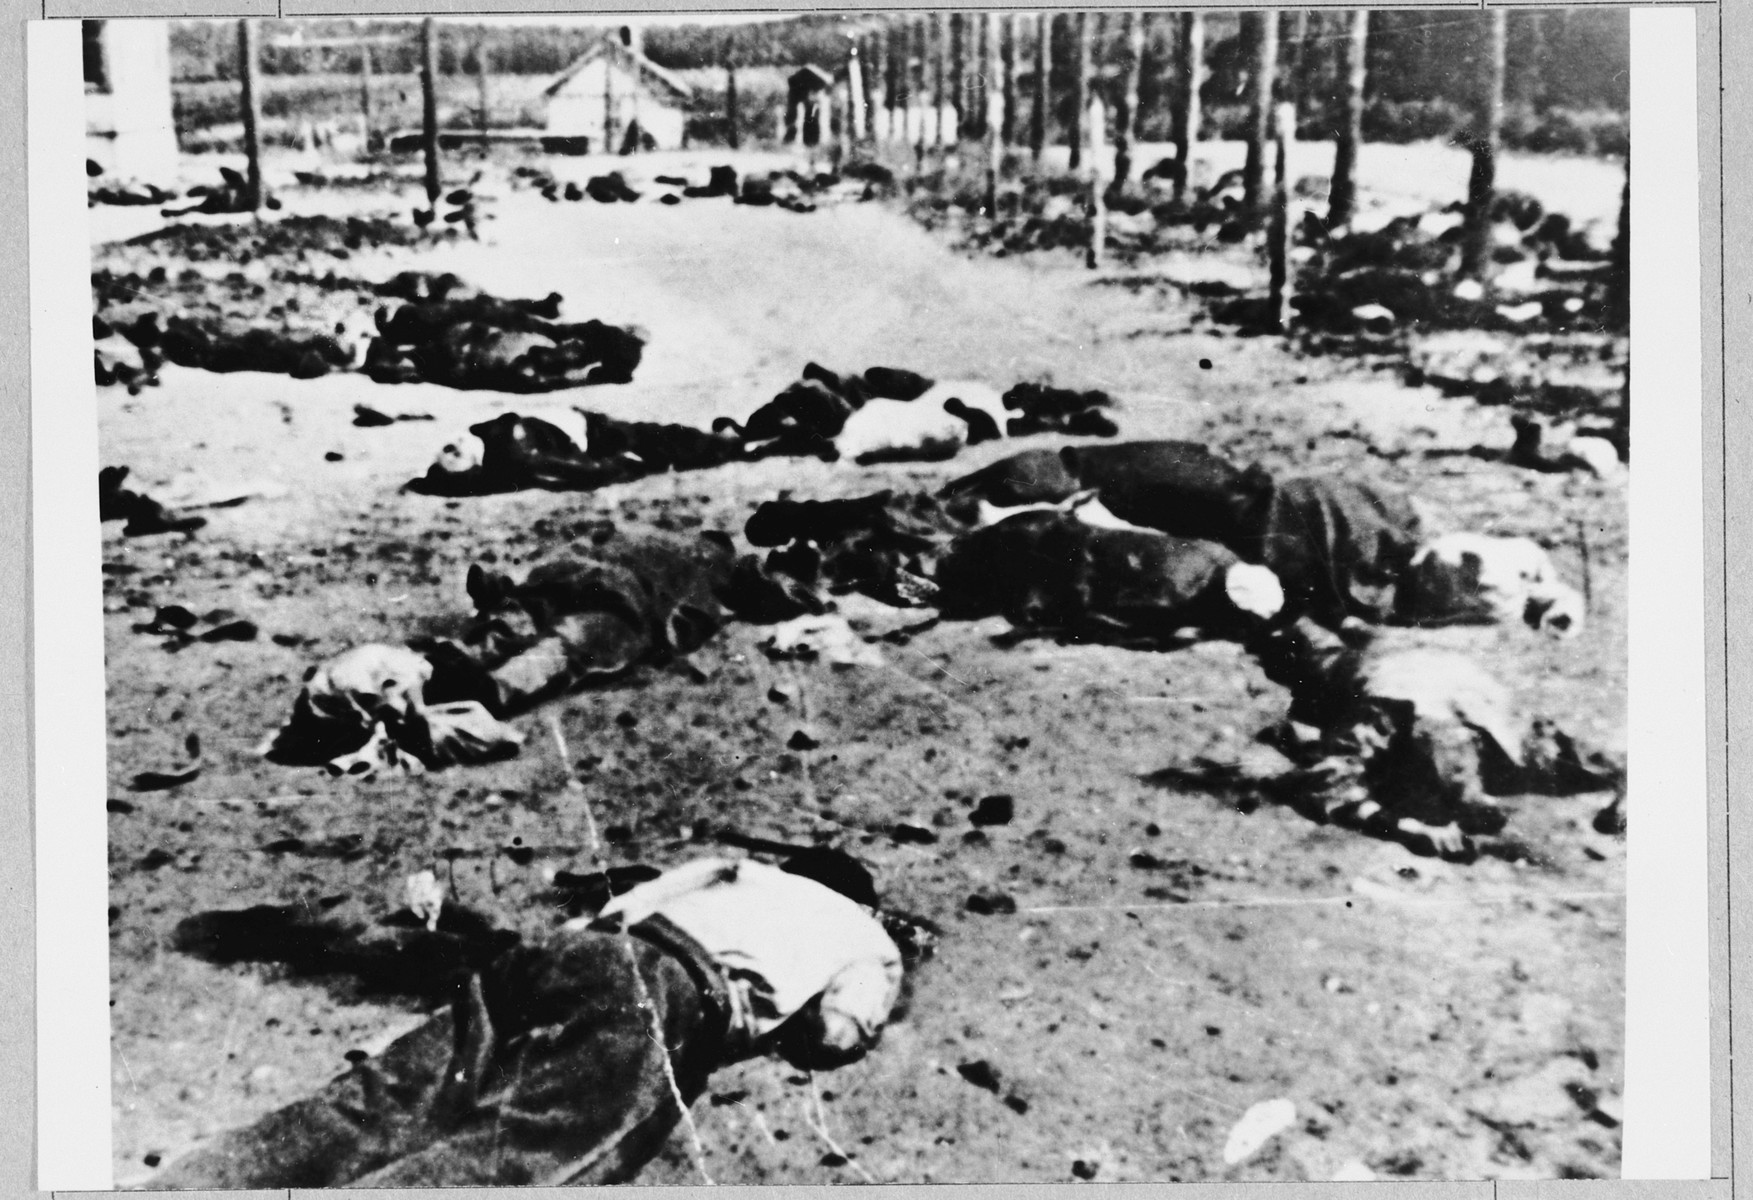 The bodies of prisoners who were killed immediately upon their arrival to the Jasenovac concentration camp.